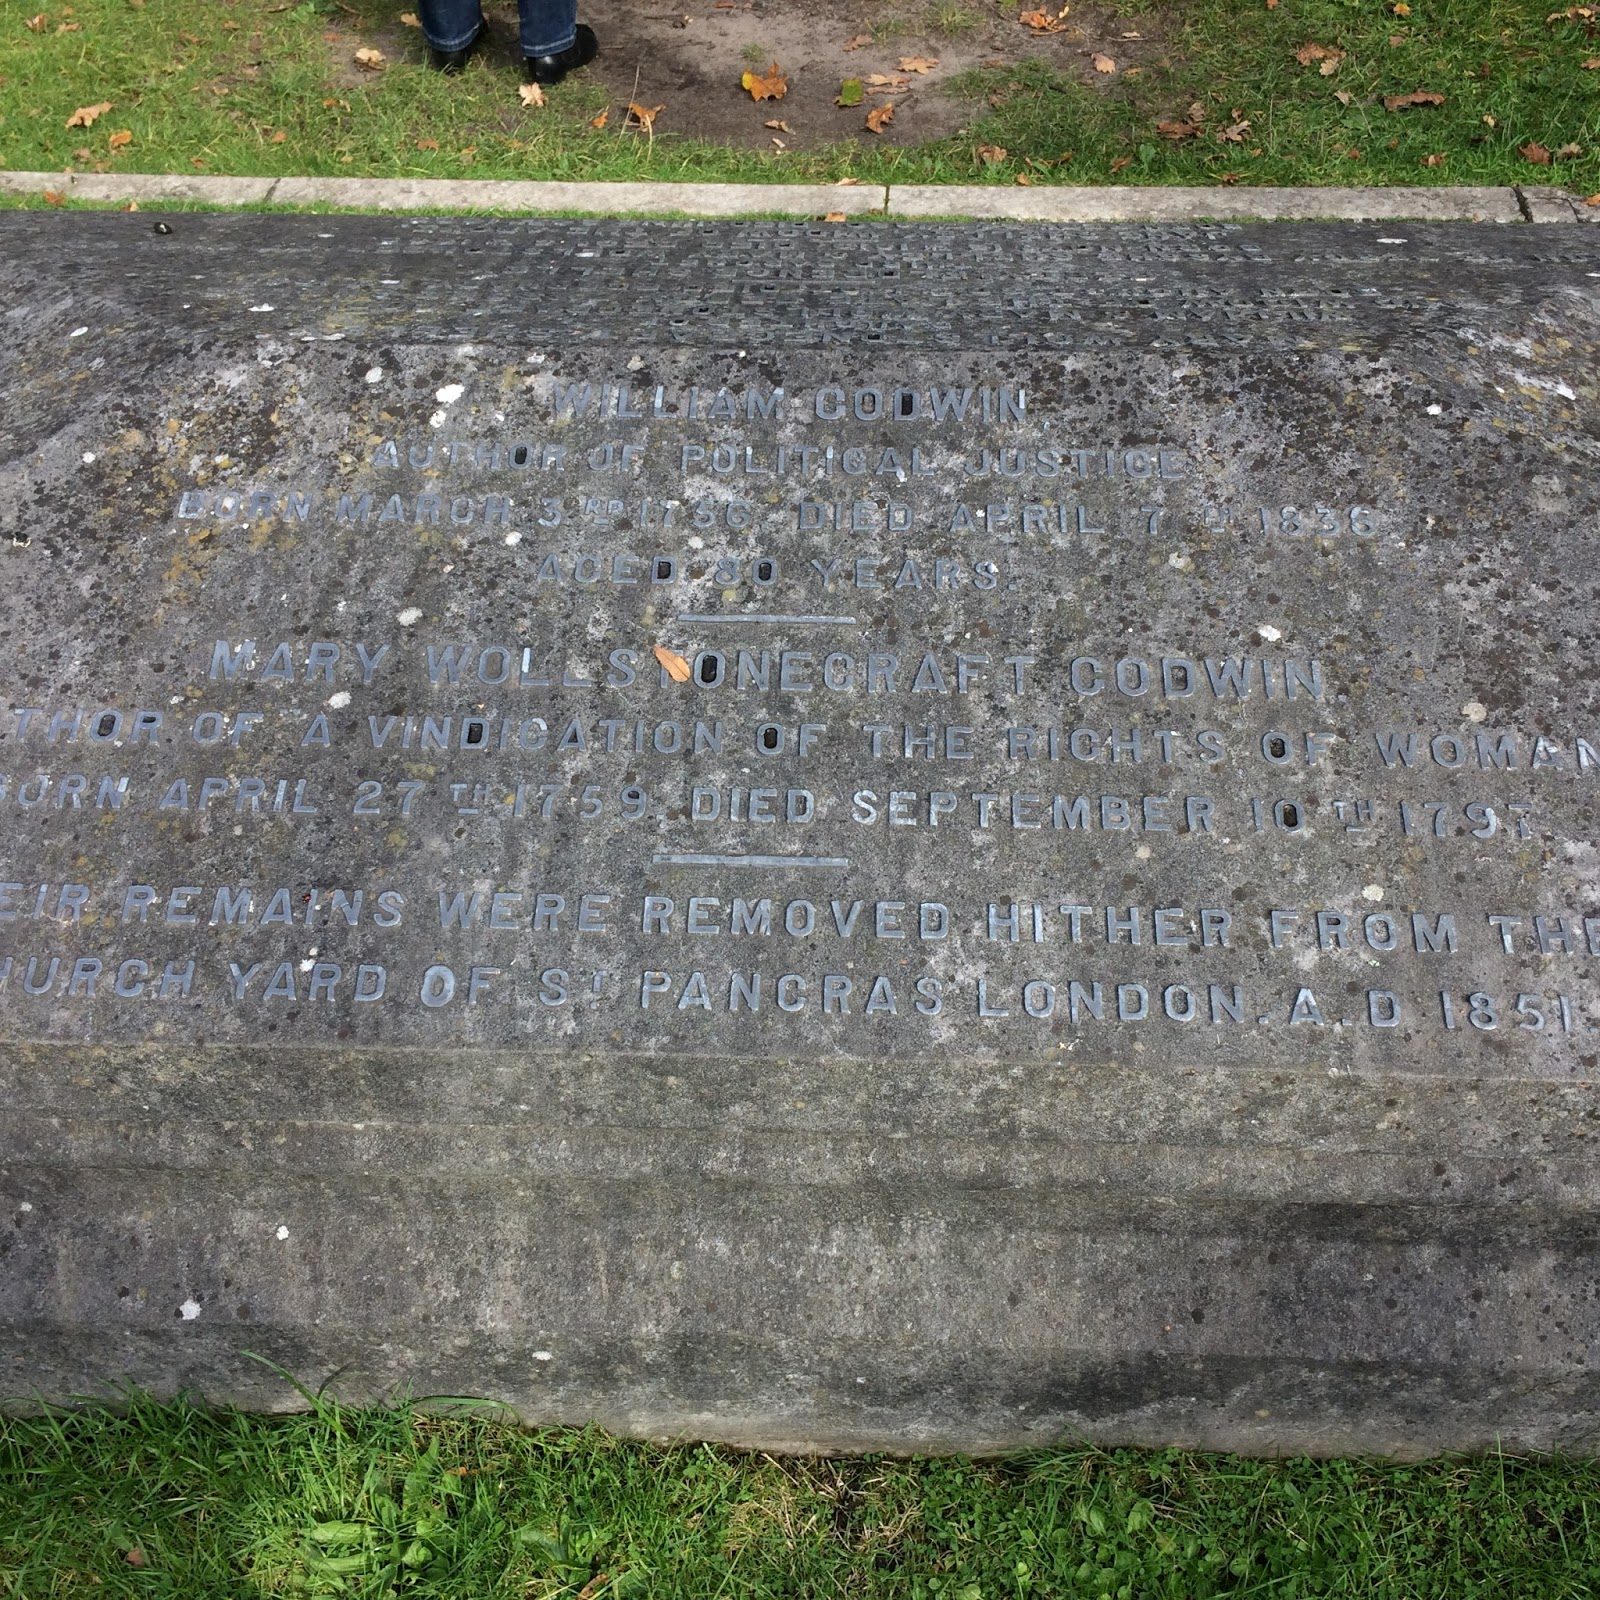 catherine redford s r ticism blog inscription commemorating mary wollstonecraft and william godwin